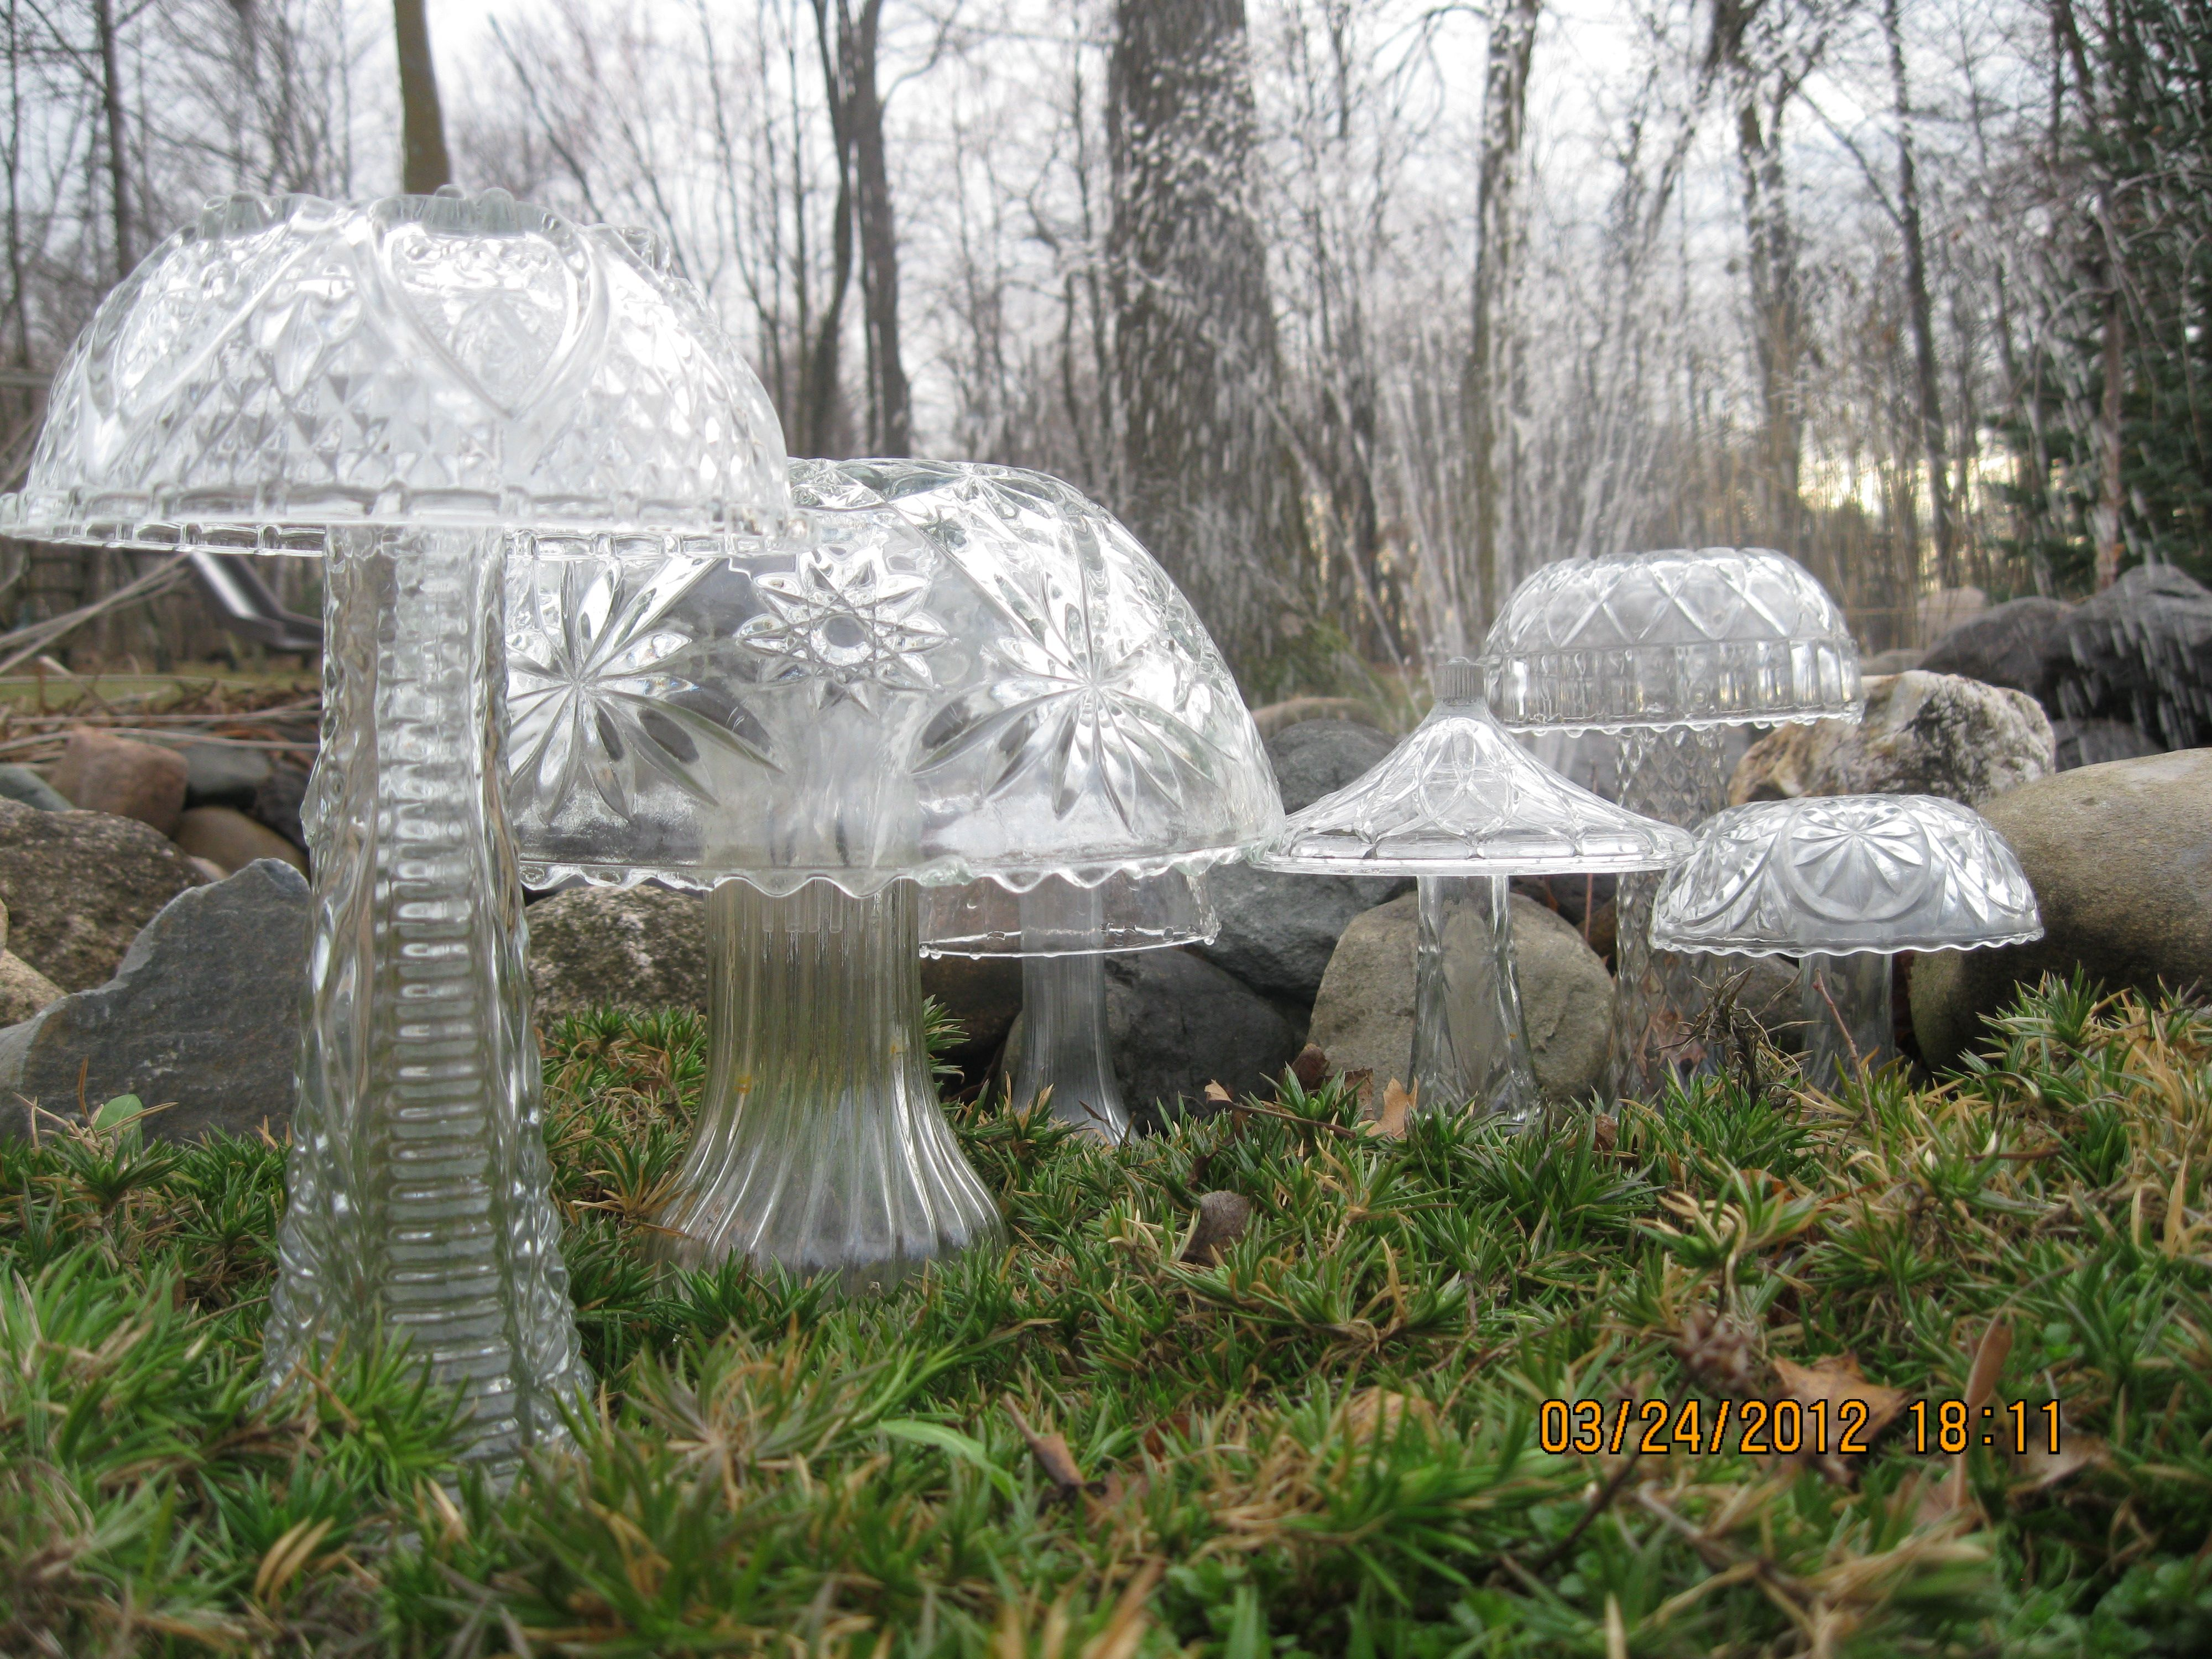 How to make glass yard art - Glitzy Diy Garden Art Mushrooms Toadstools Of All Sizes Made From Cut Glass Bowls